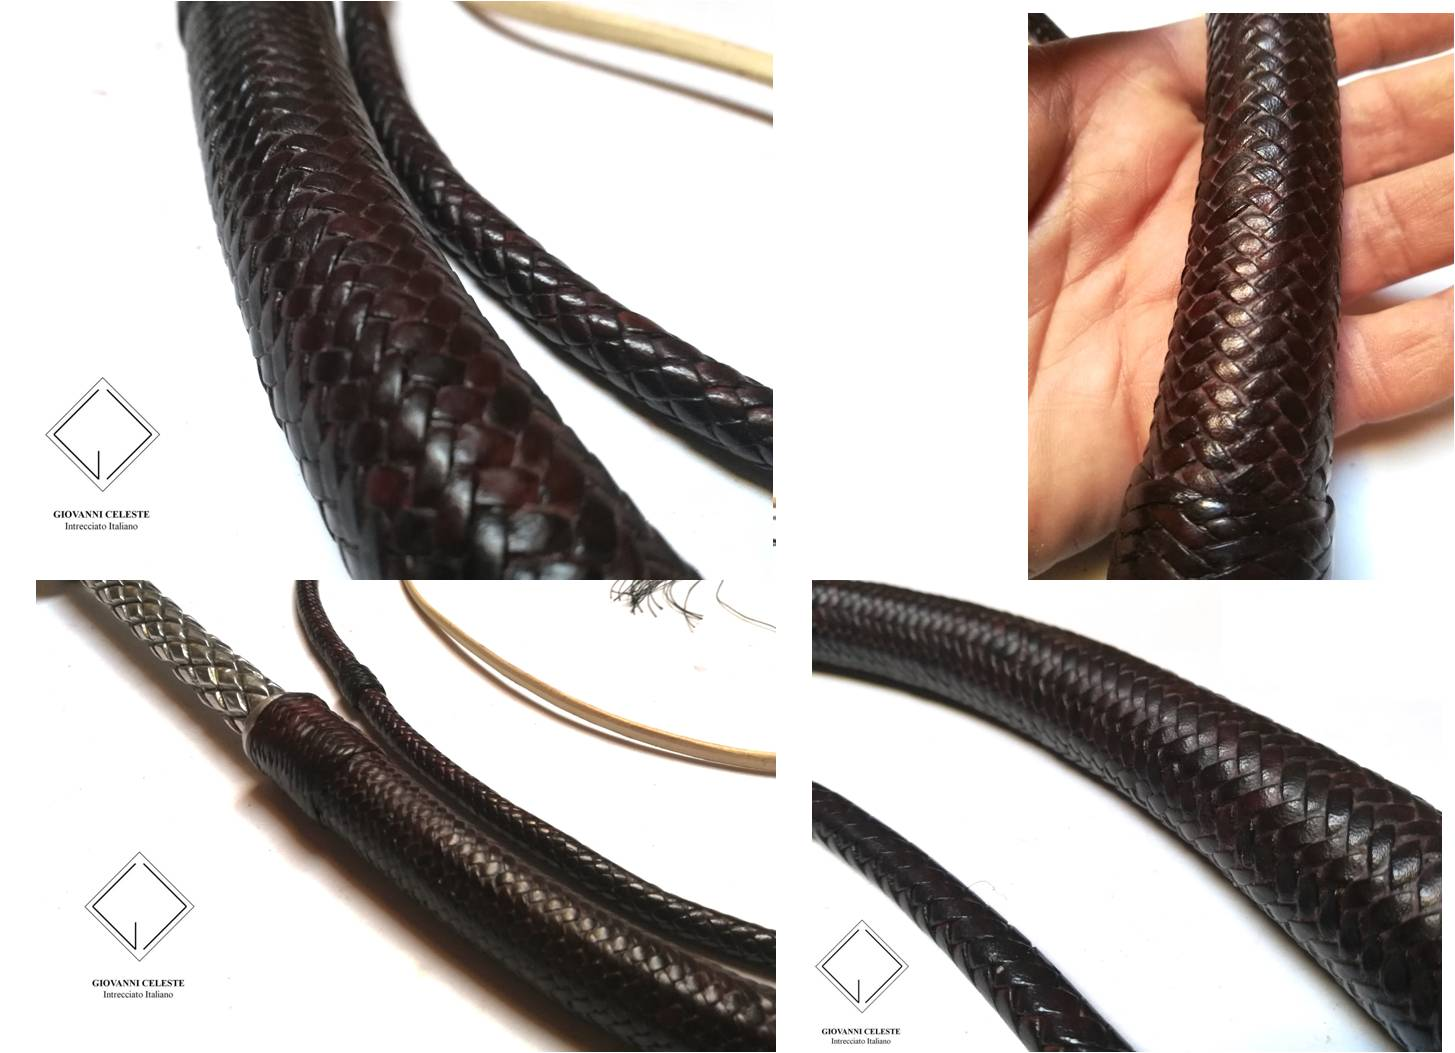 How much does a leather kangaroo whip cost?